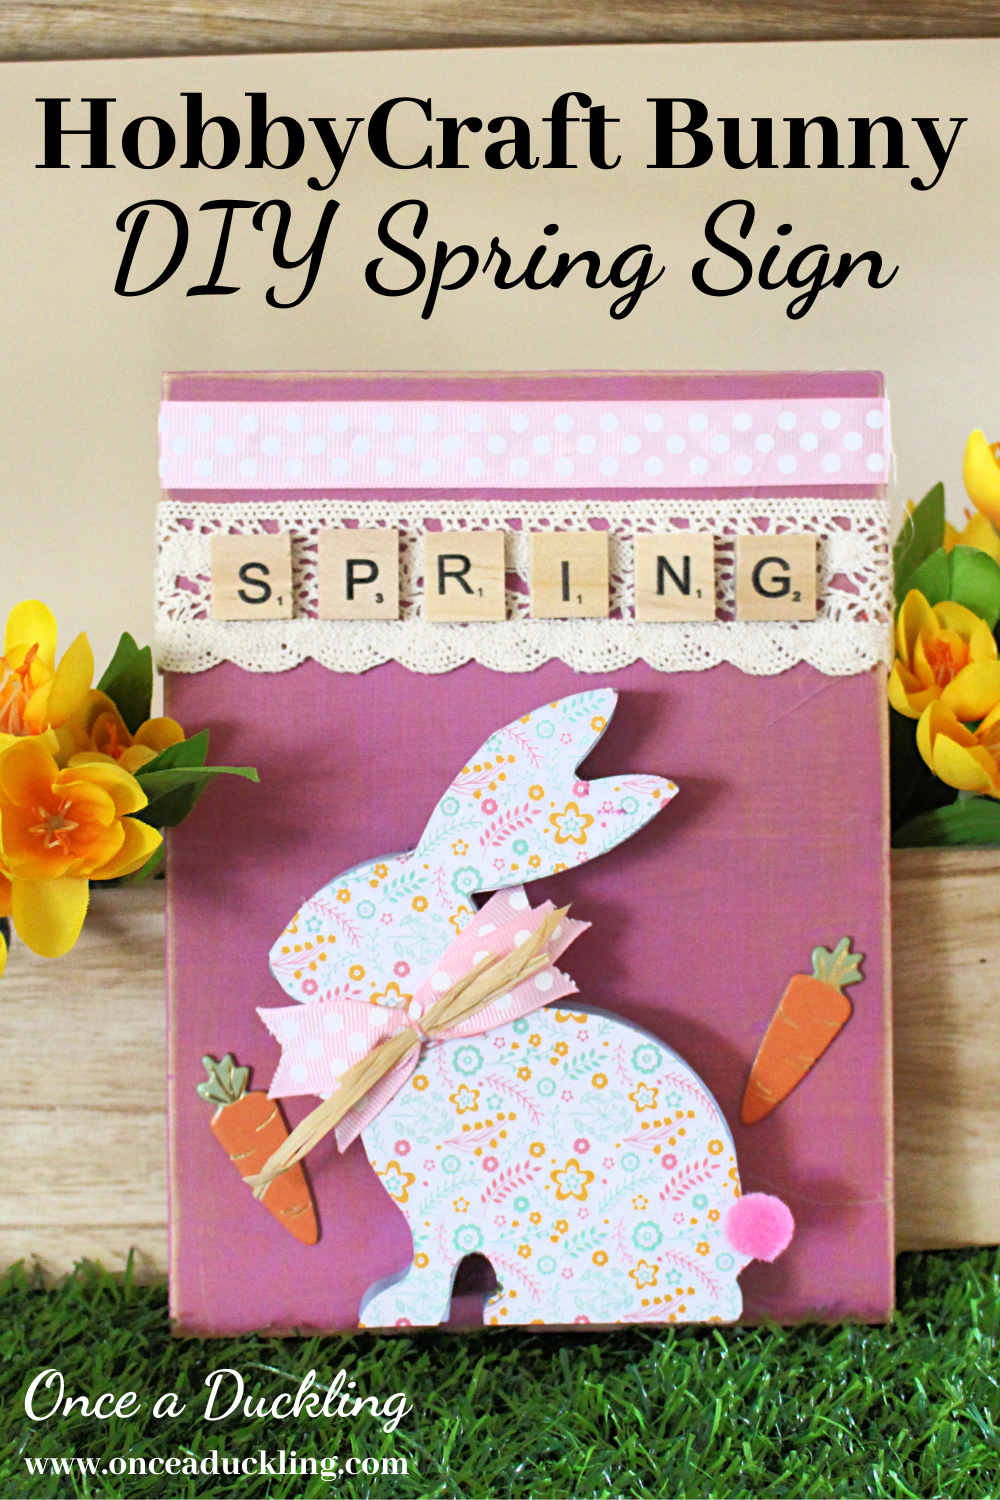 Hobbycraft sitting rabbit to create a cute spring sign